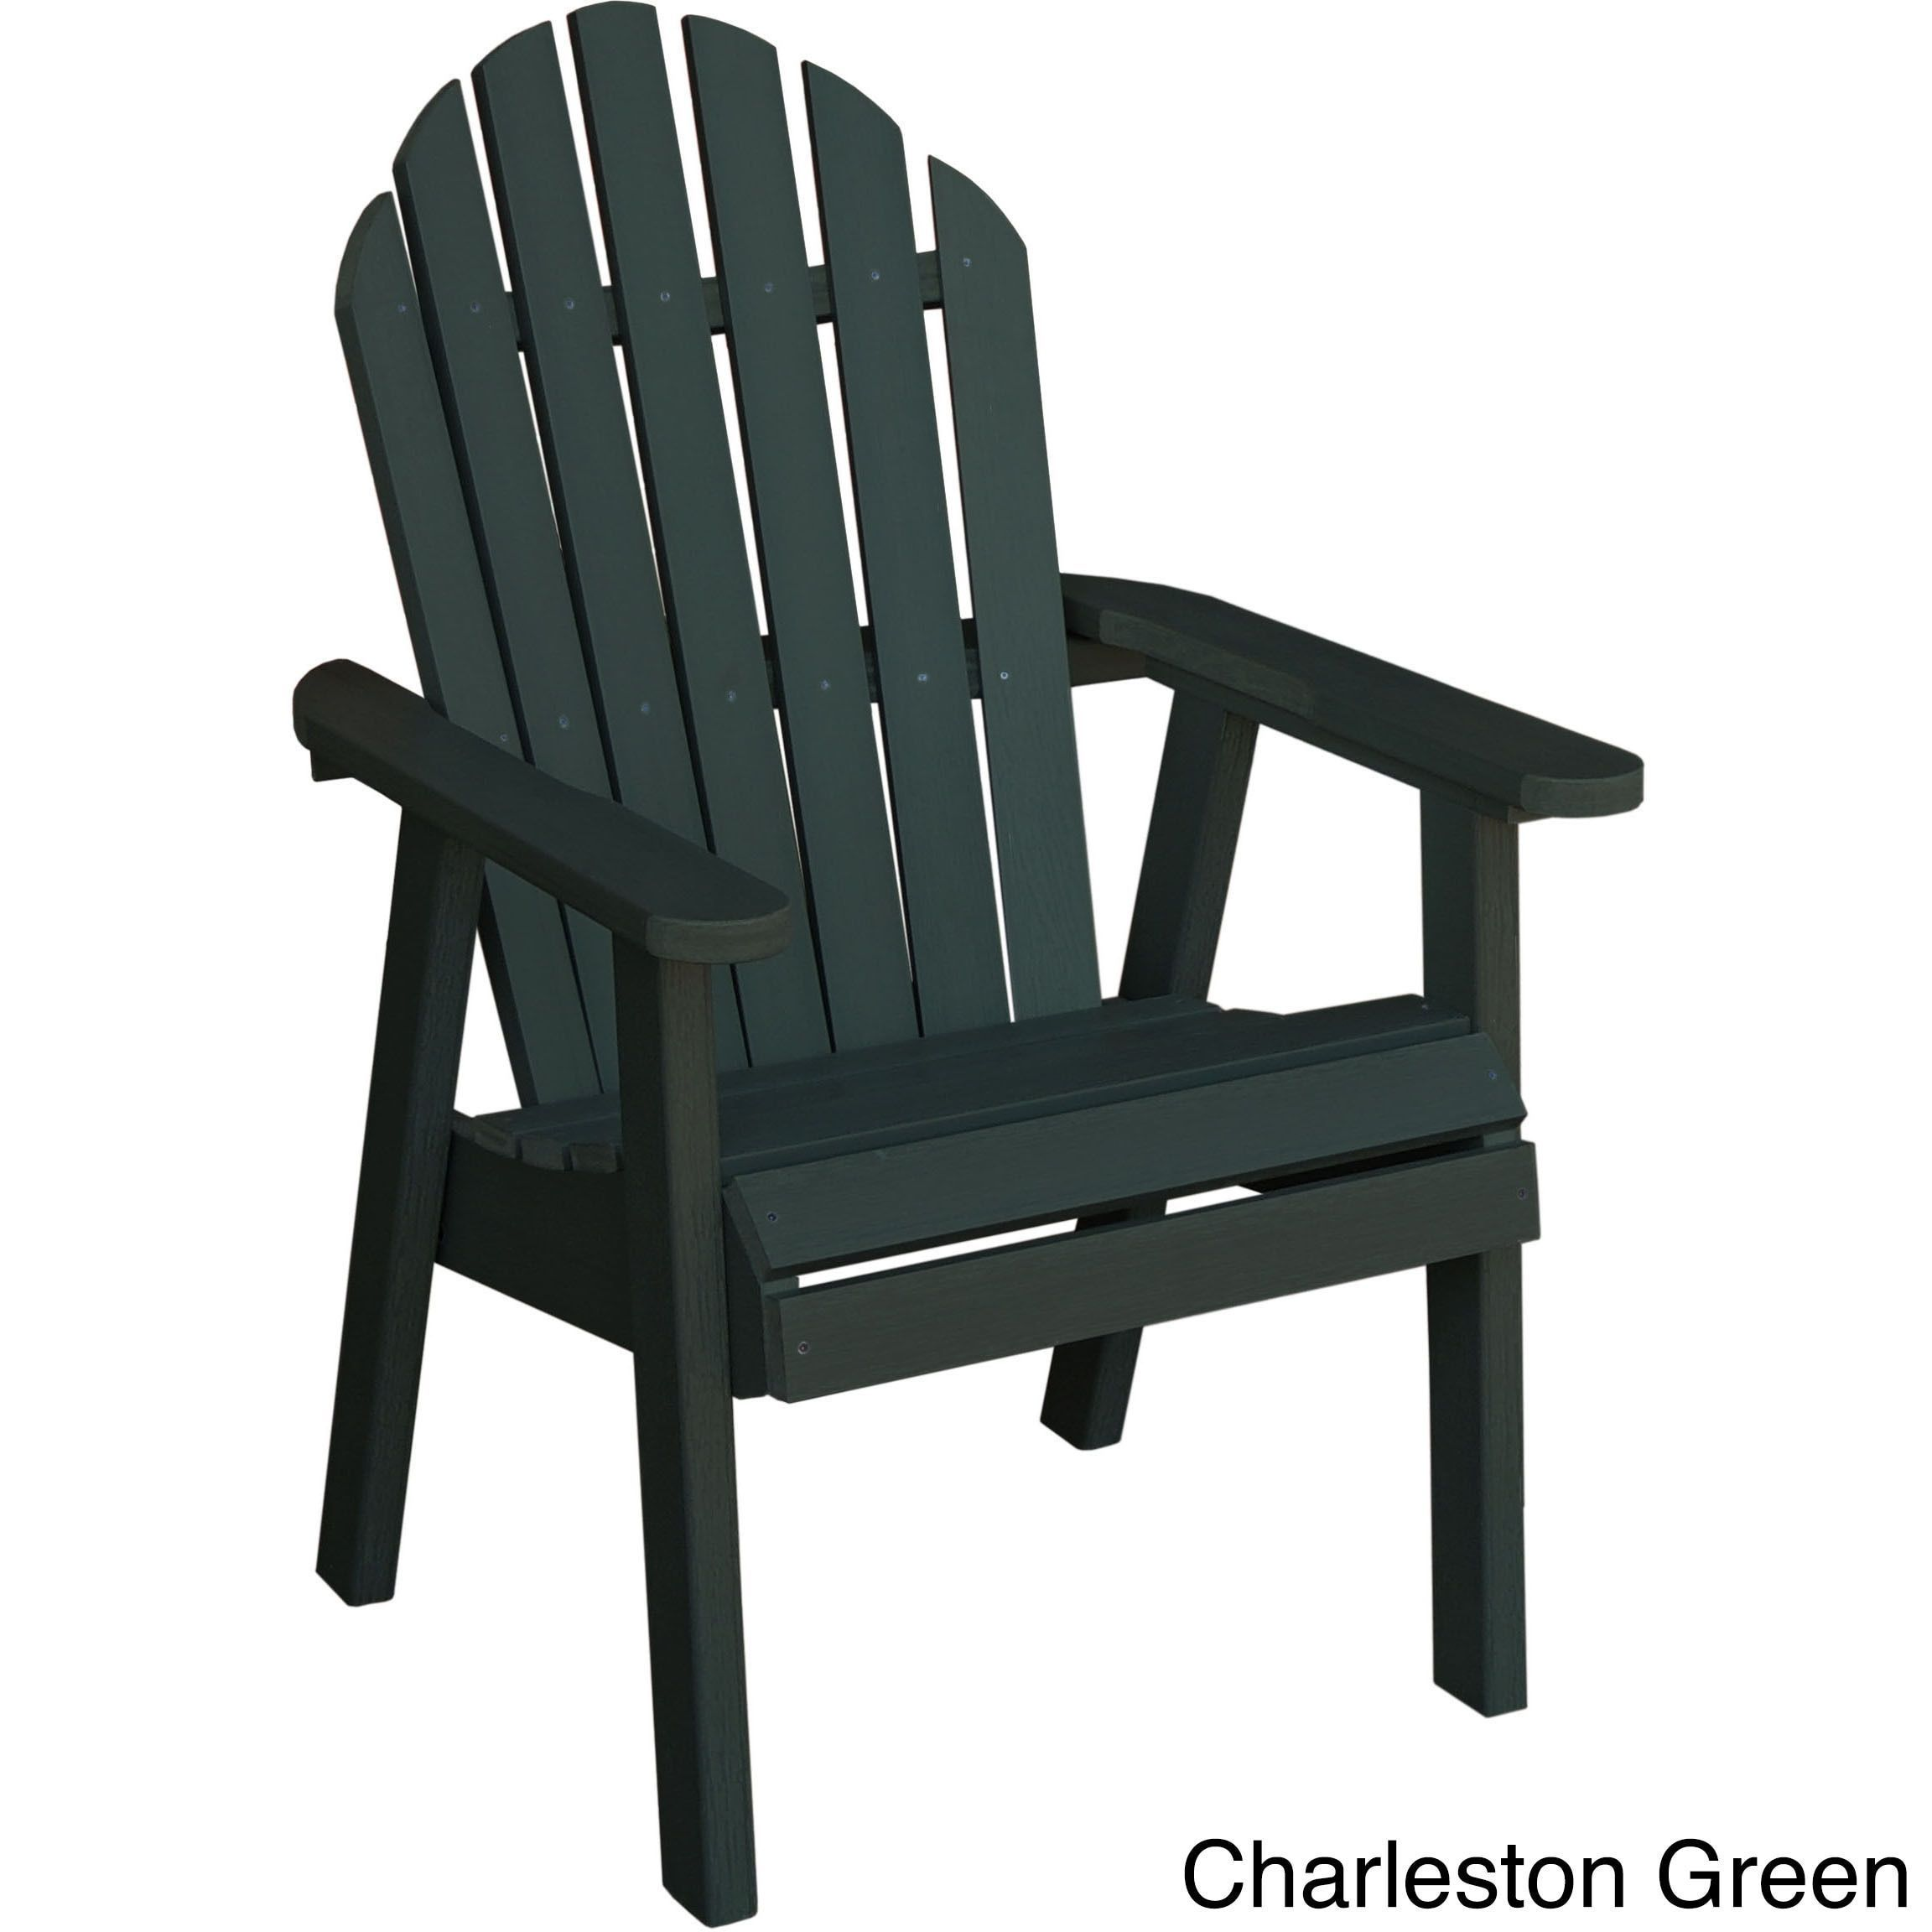 Highwood eco friendly marine grade synthetic wood hamilton deck chair green size single patio furniture plastic